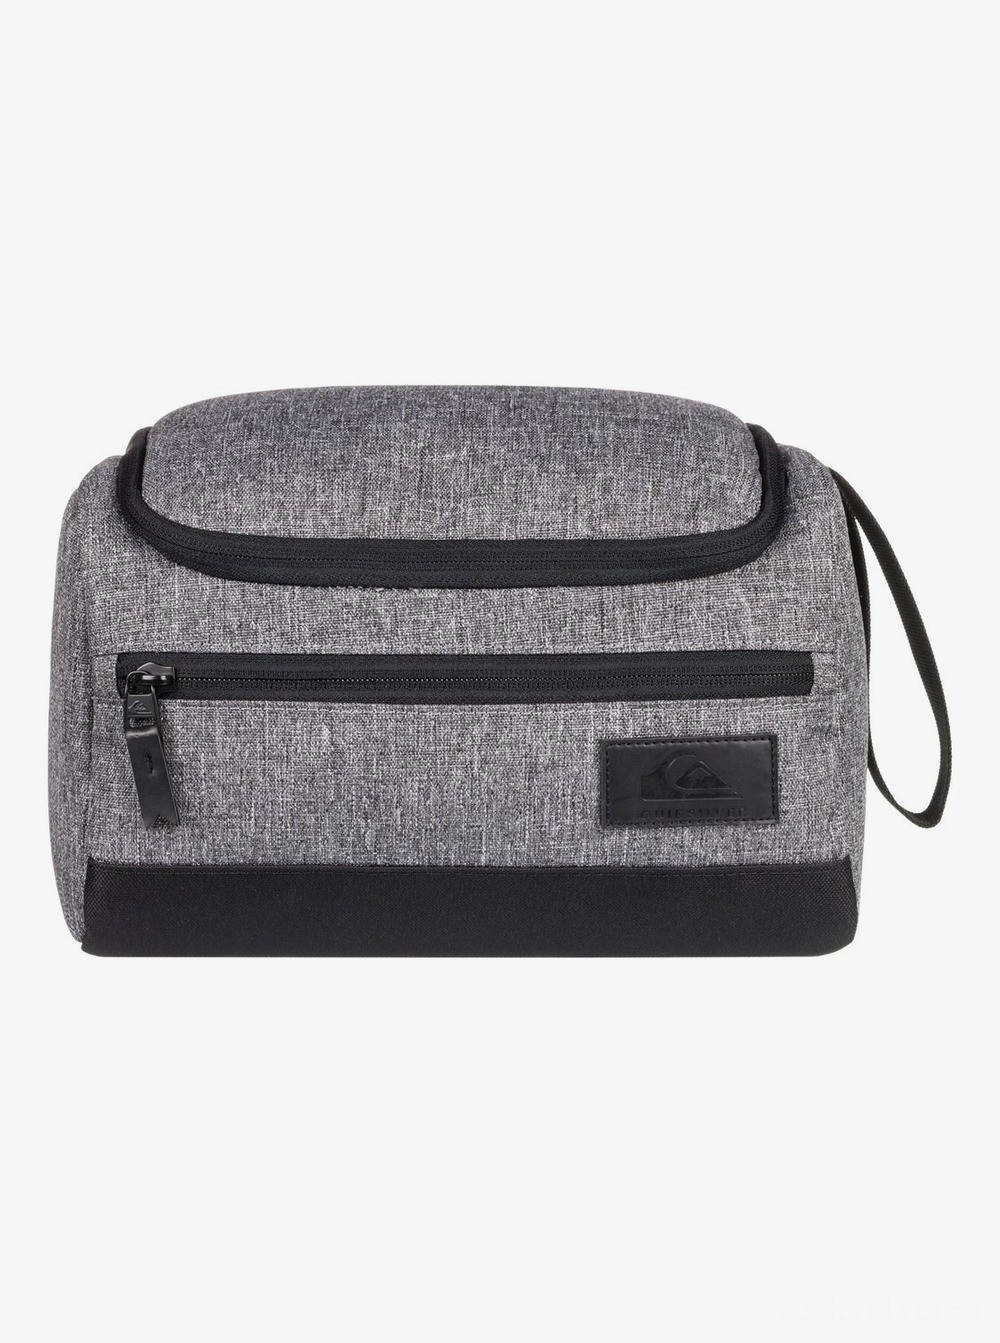 last chance capsule travel kit - light grey heather best price limited sale